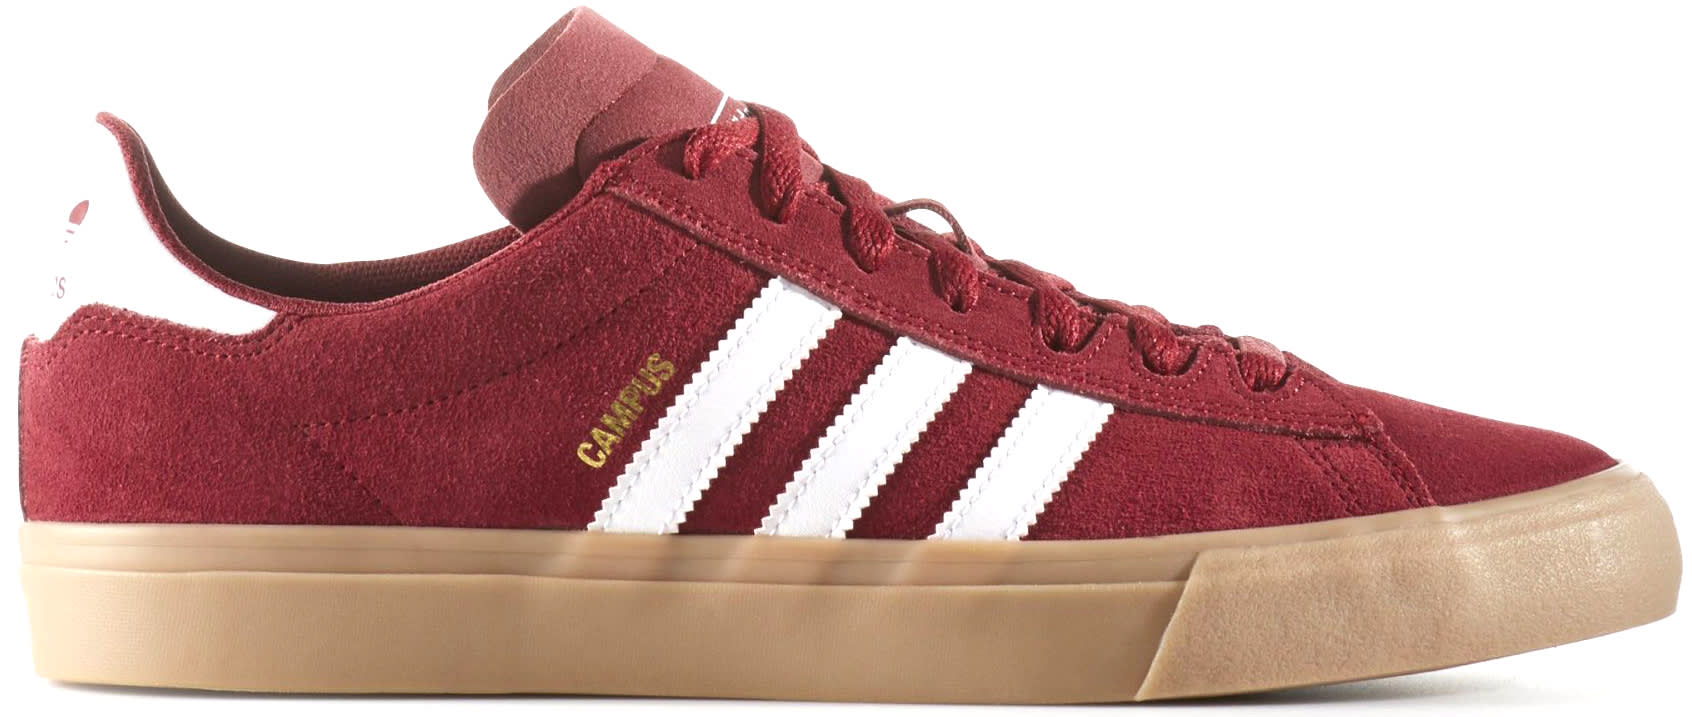 separation shoes 5d60a 45c05 UPC 889136976201. Adidas Campus Vulc II ADV Skate Shoes